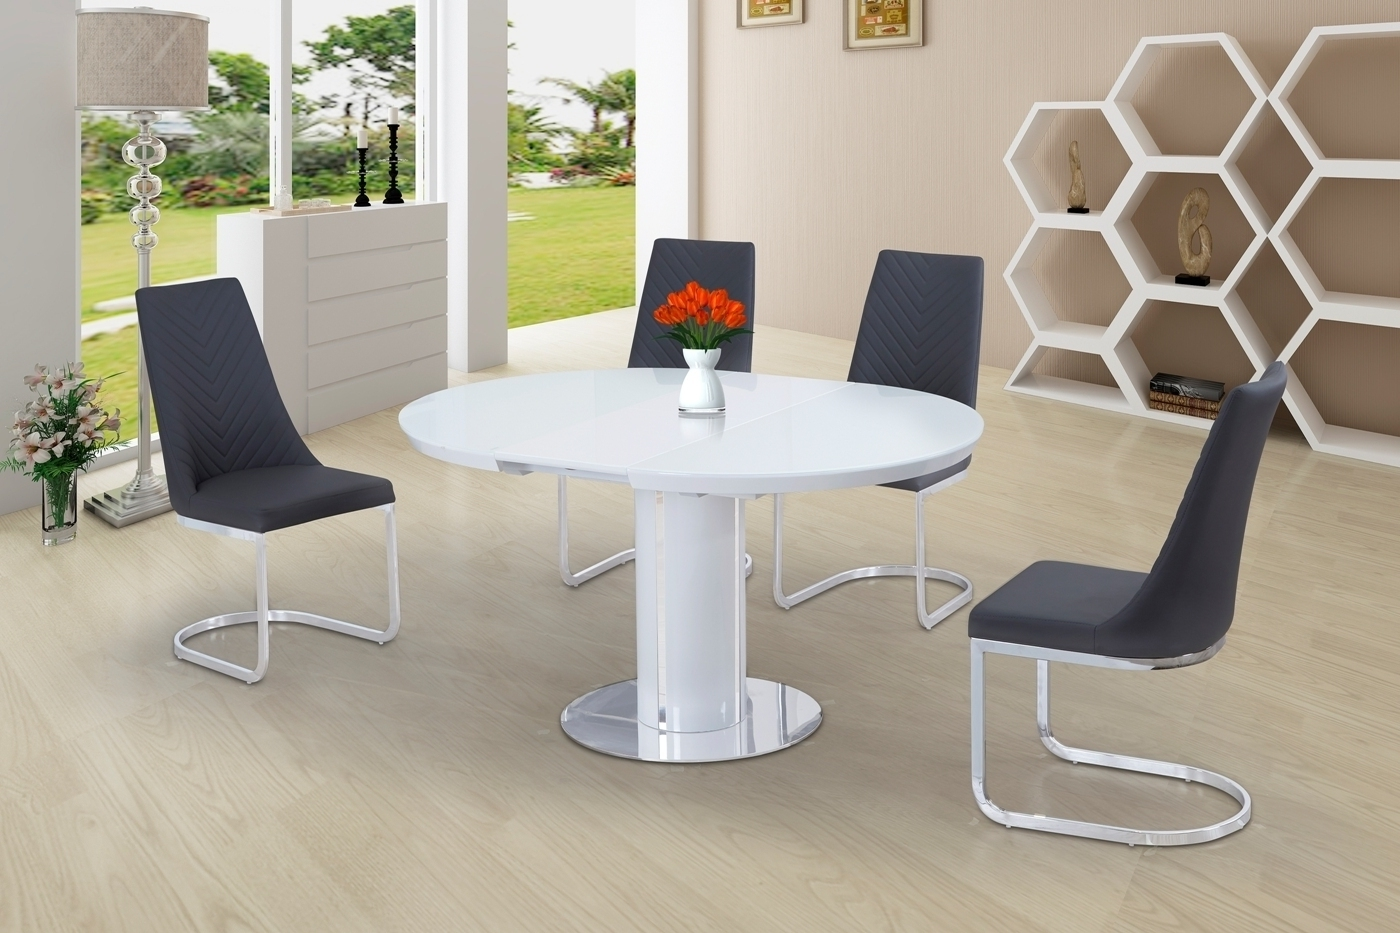 Round White Glass High Gloss Dining Table And 6 Grey Chairs With Regard To Well Liked Grey Gloss Dining Tables (View 19 of 25)